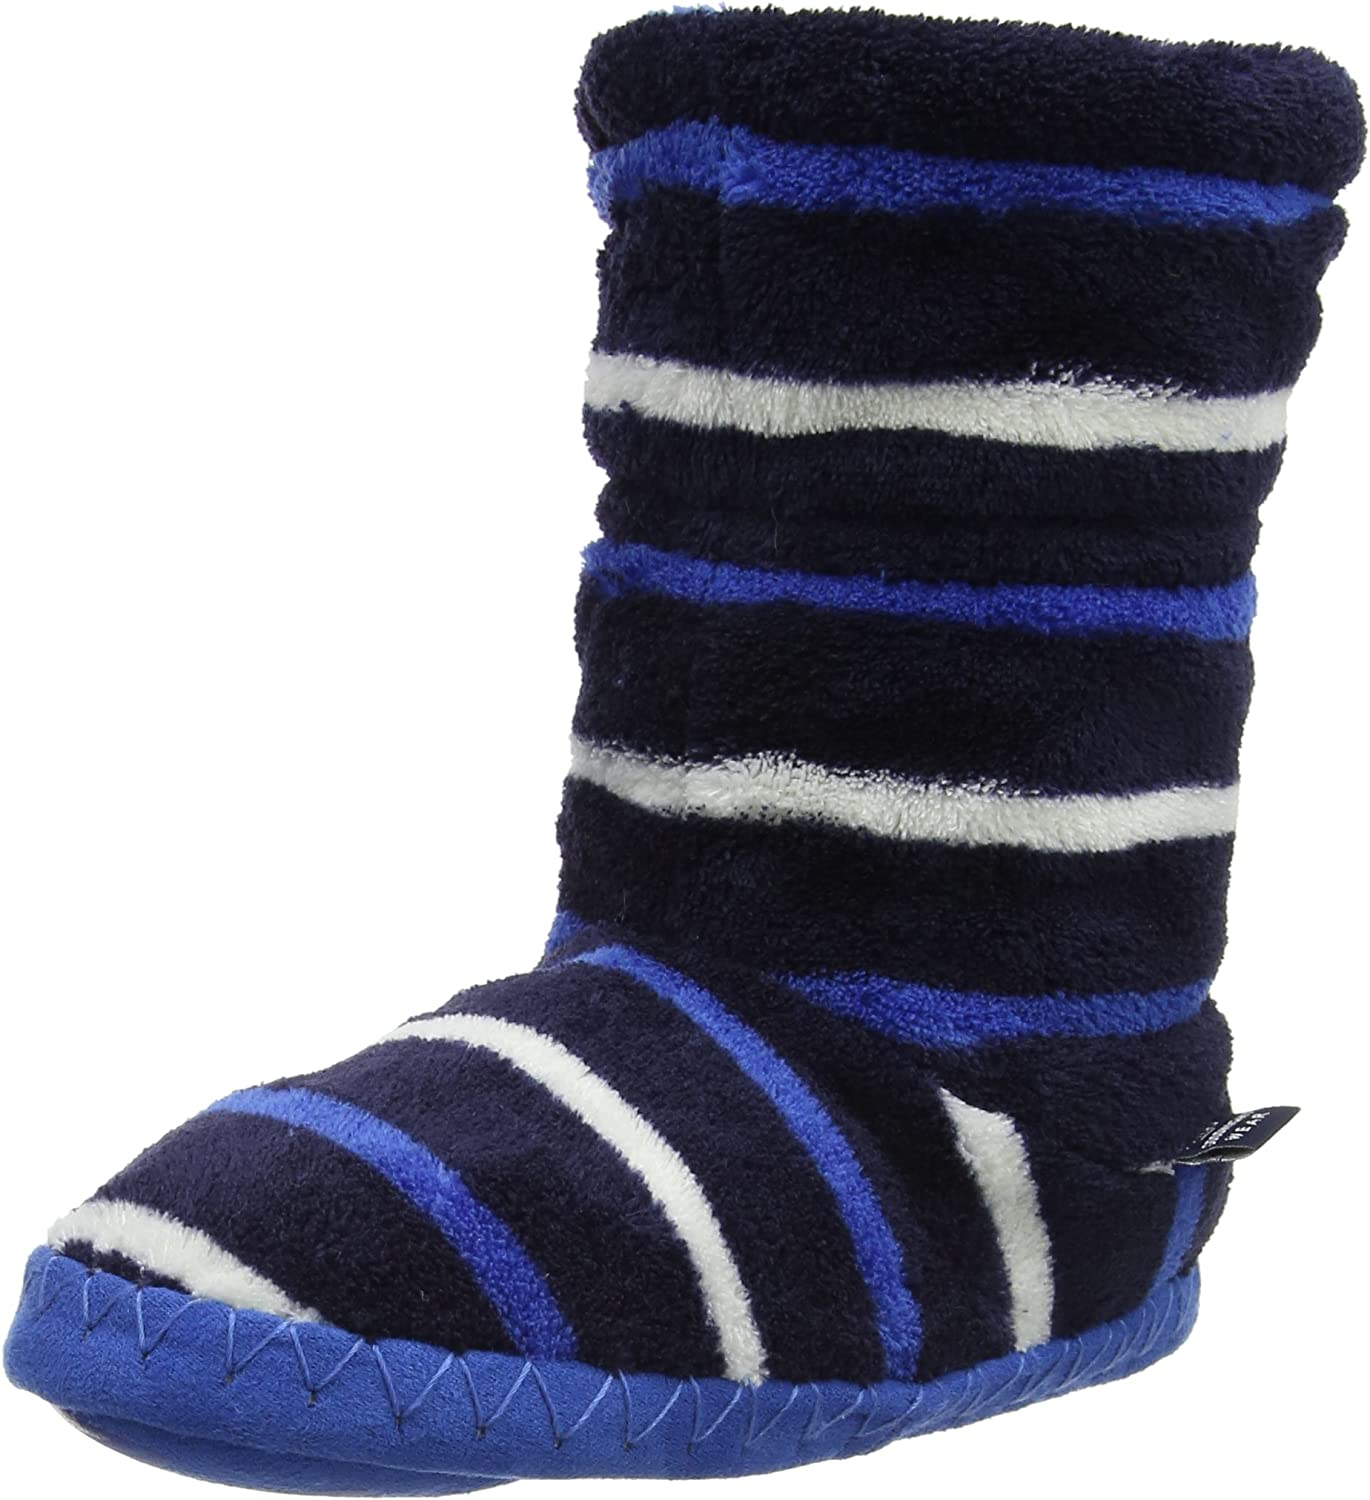 Joules Boys' Pad about Hi-Top Slippers